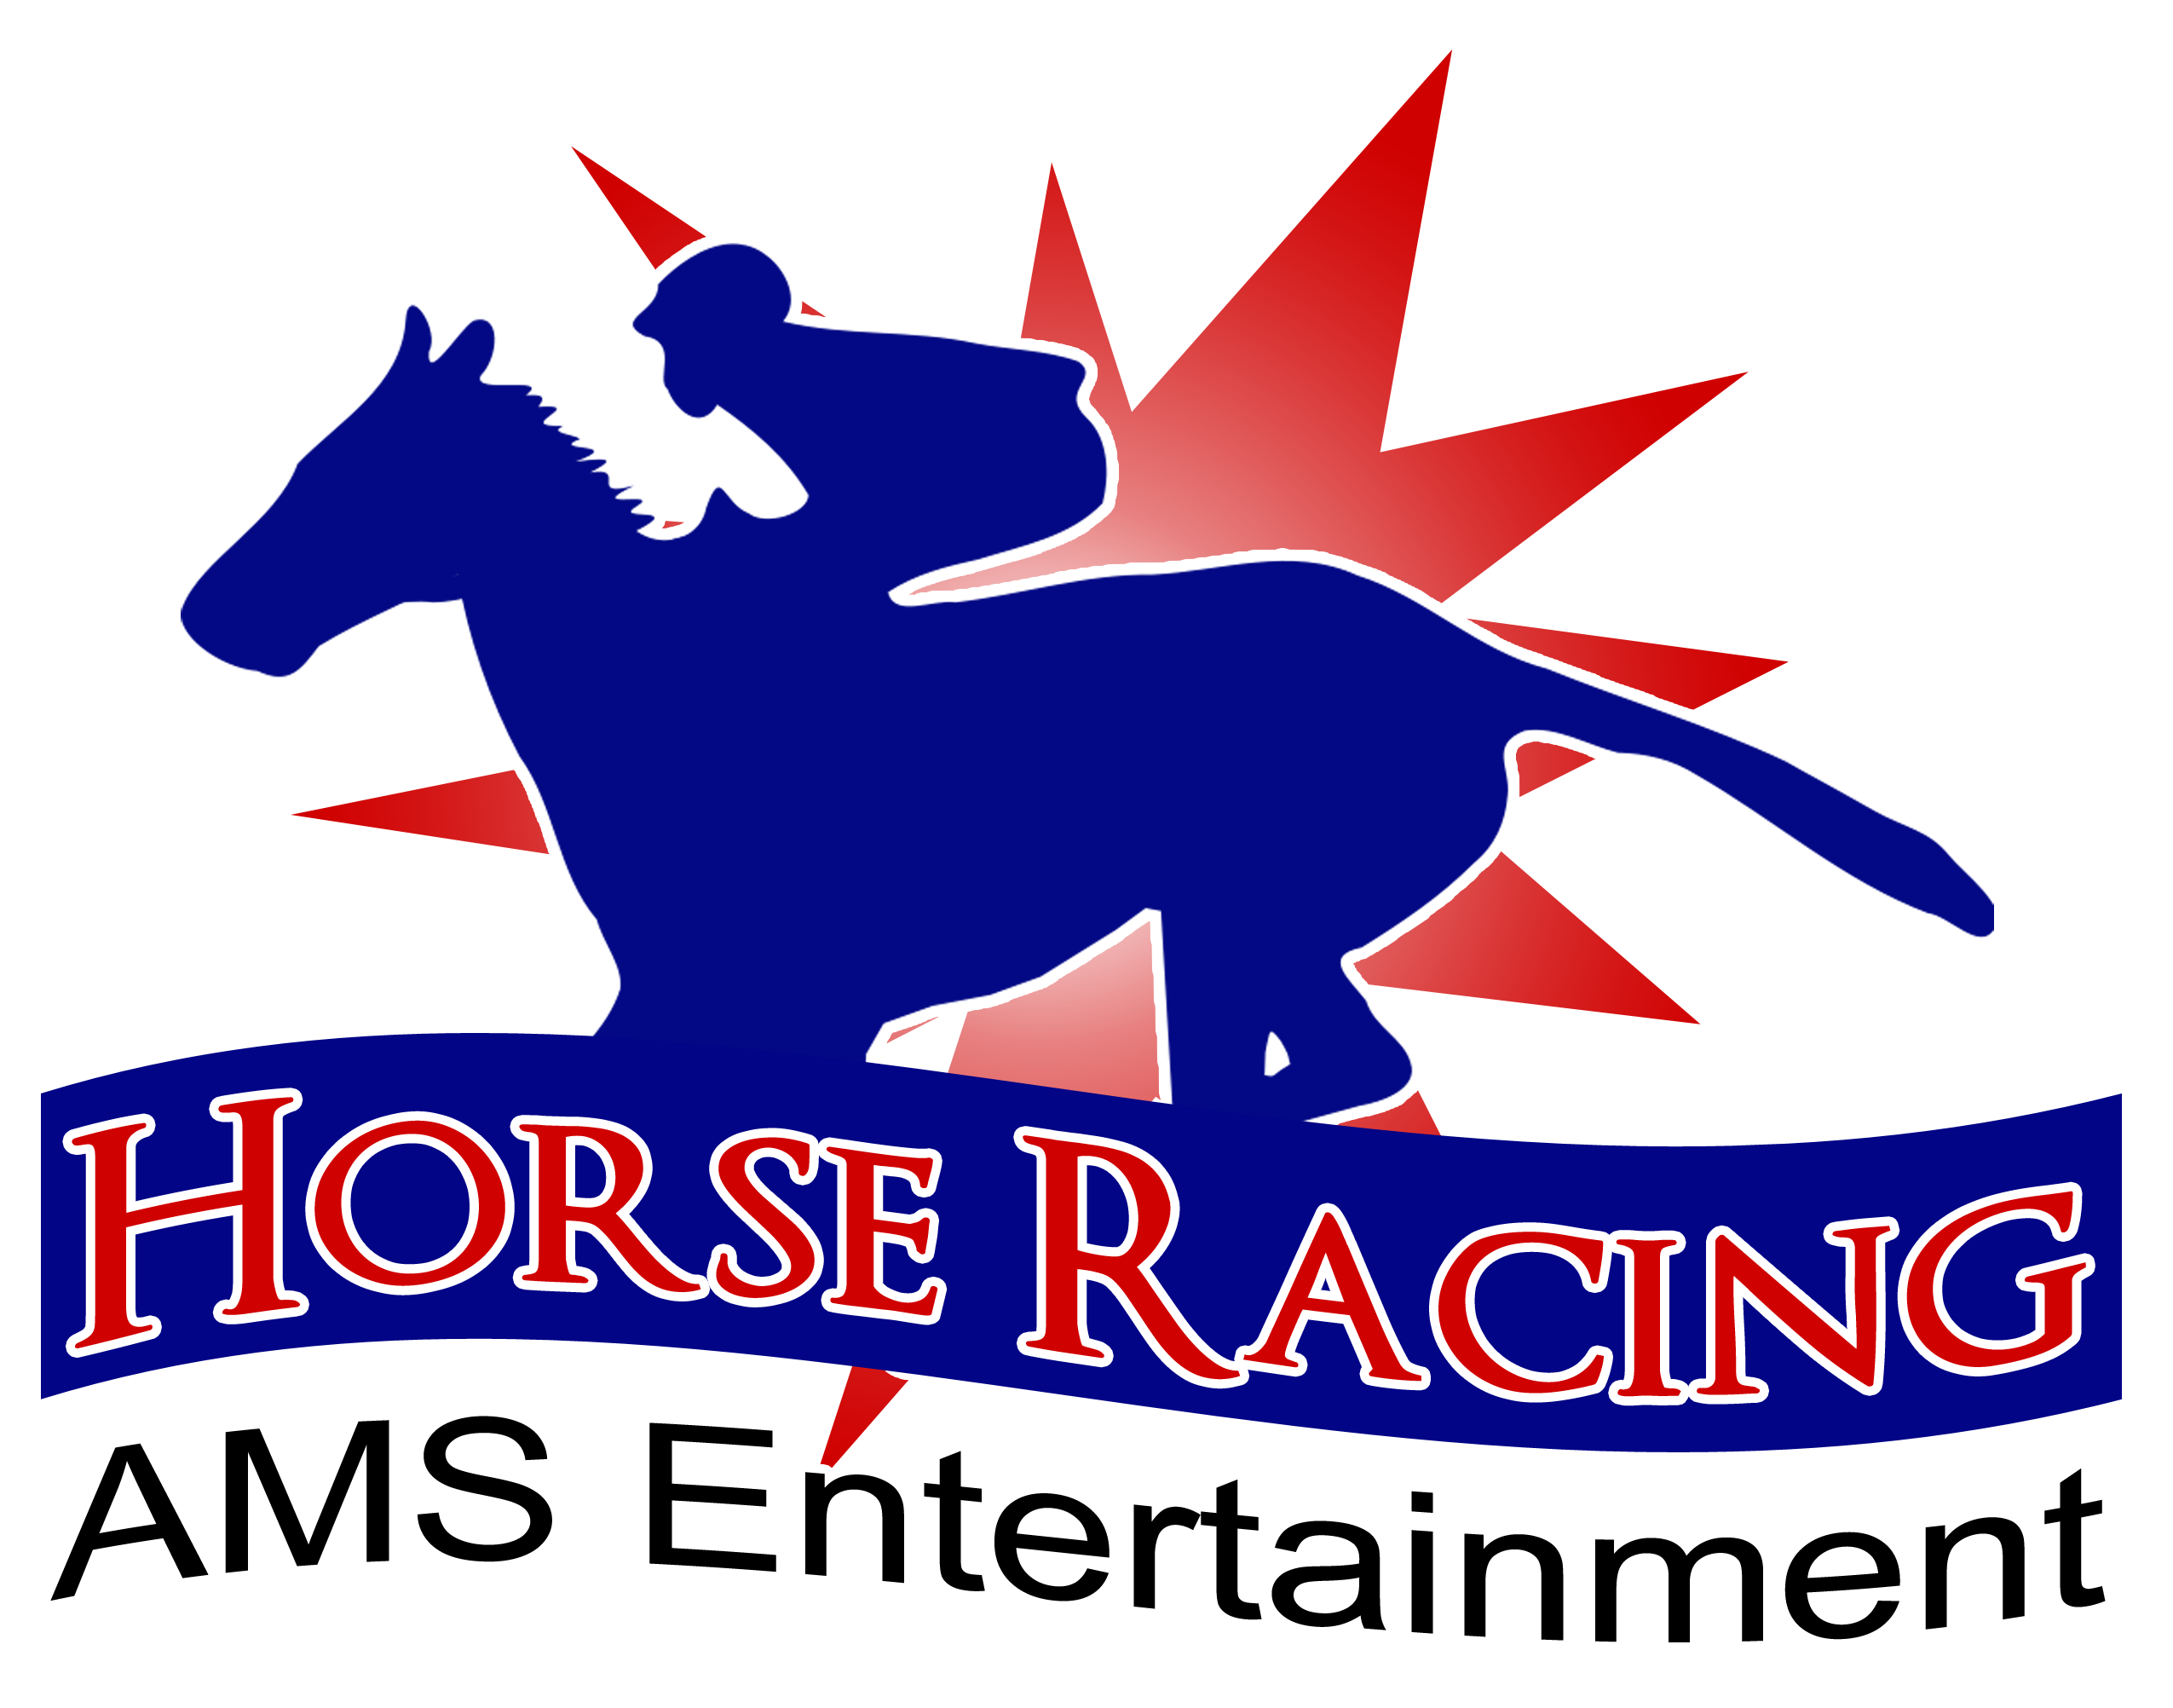 horse racing logo wwwpixsharkcom images galleries